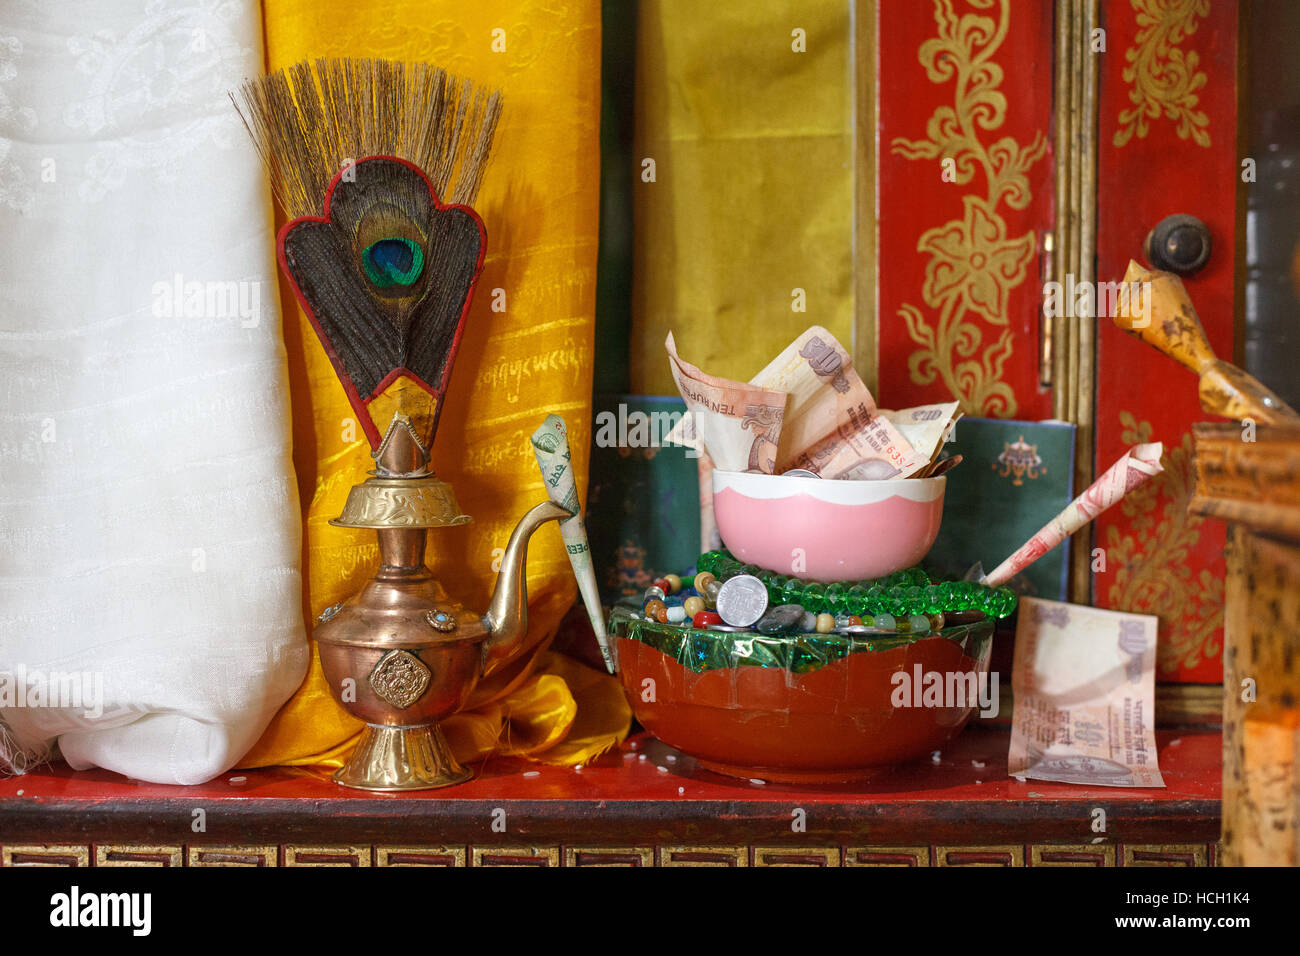 Altar offerings at the tibetan buddhism temple, India - Stock Image